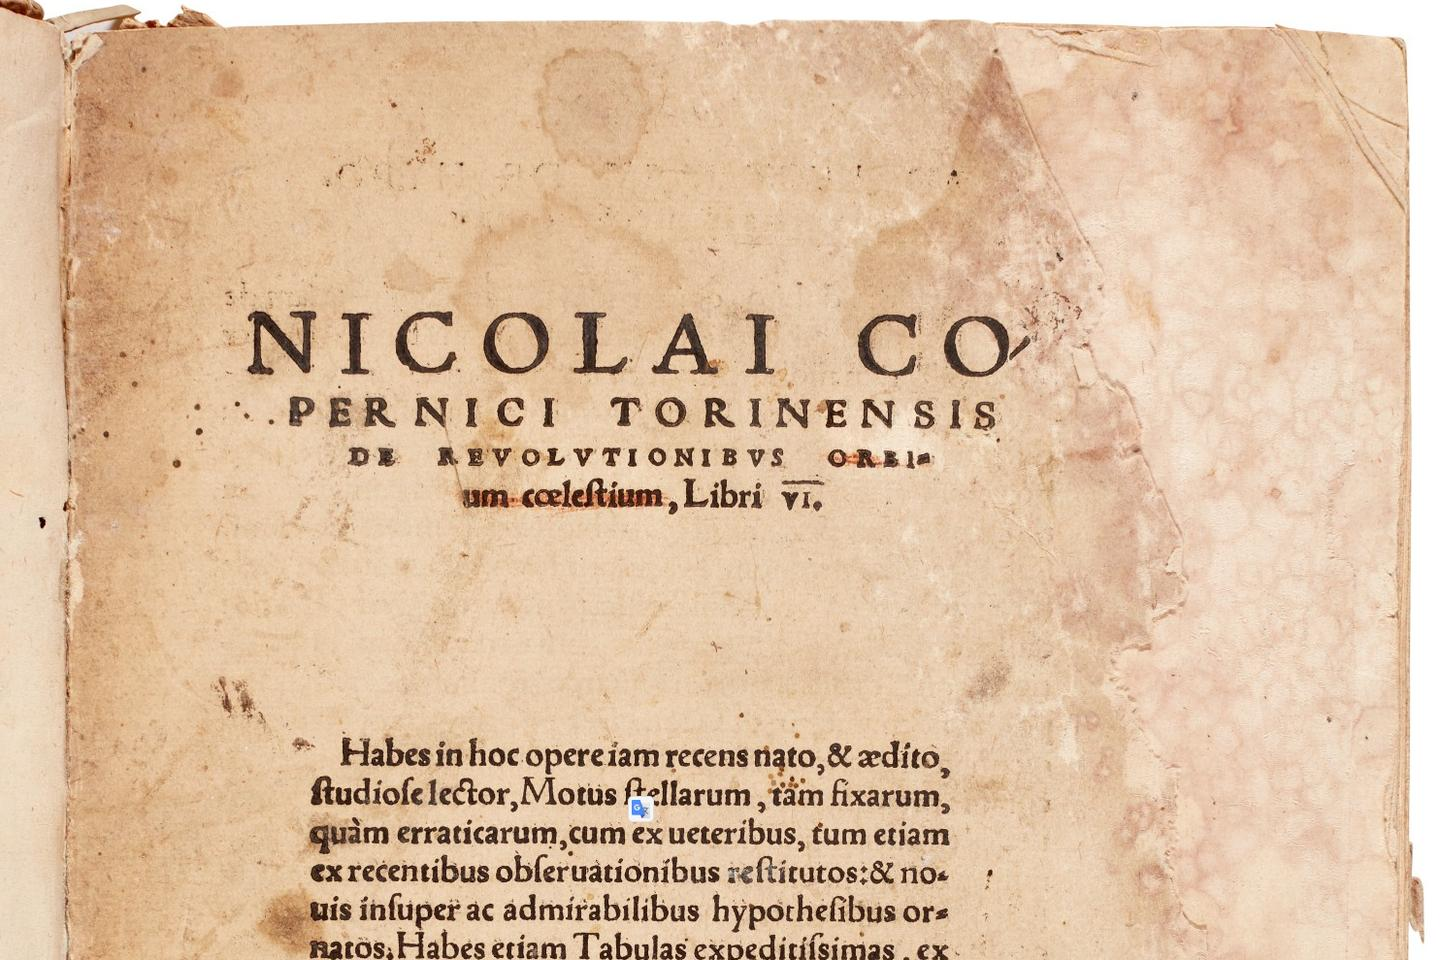 """The title page of this first edition copy of Nicolas Copernicus' De revolutionibus orbium coelestium has the words """"orbium coelestium"""" crossed out in red. It is believed these markings were made by the hand of Rheticus."""